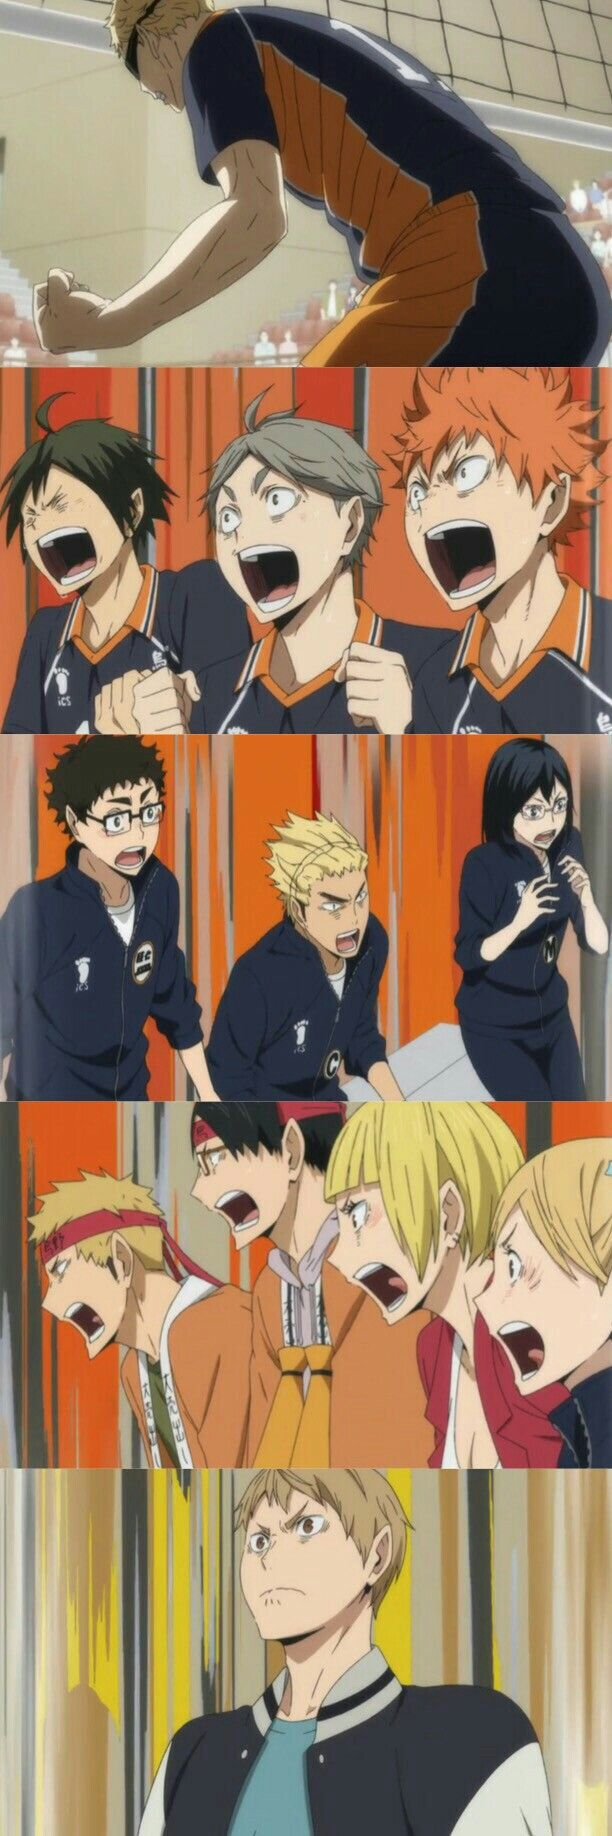 Haikyuu episode 4 season 3 tsukishima block reaction BEST EPISODE EVAH